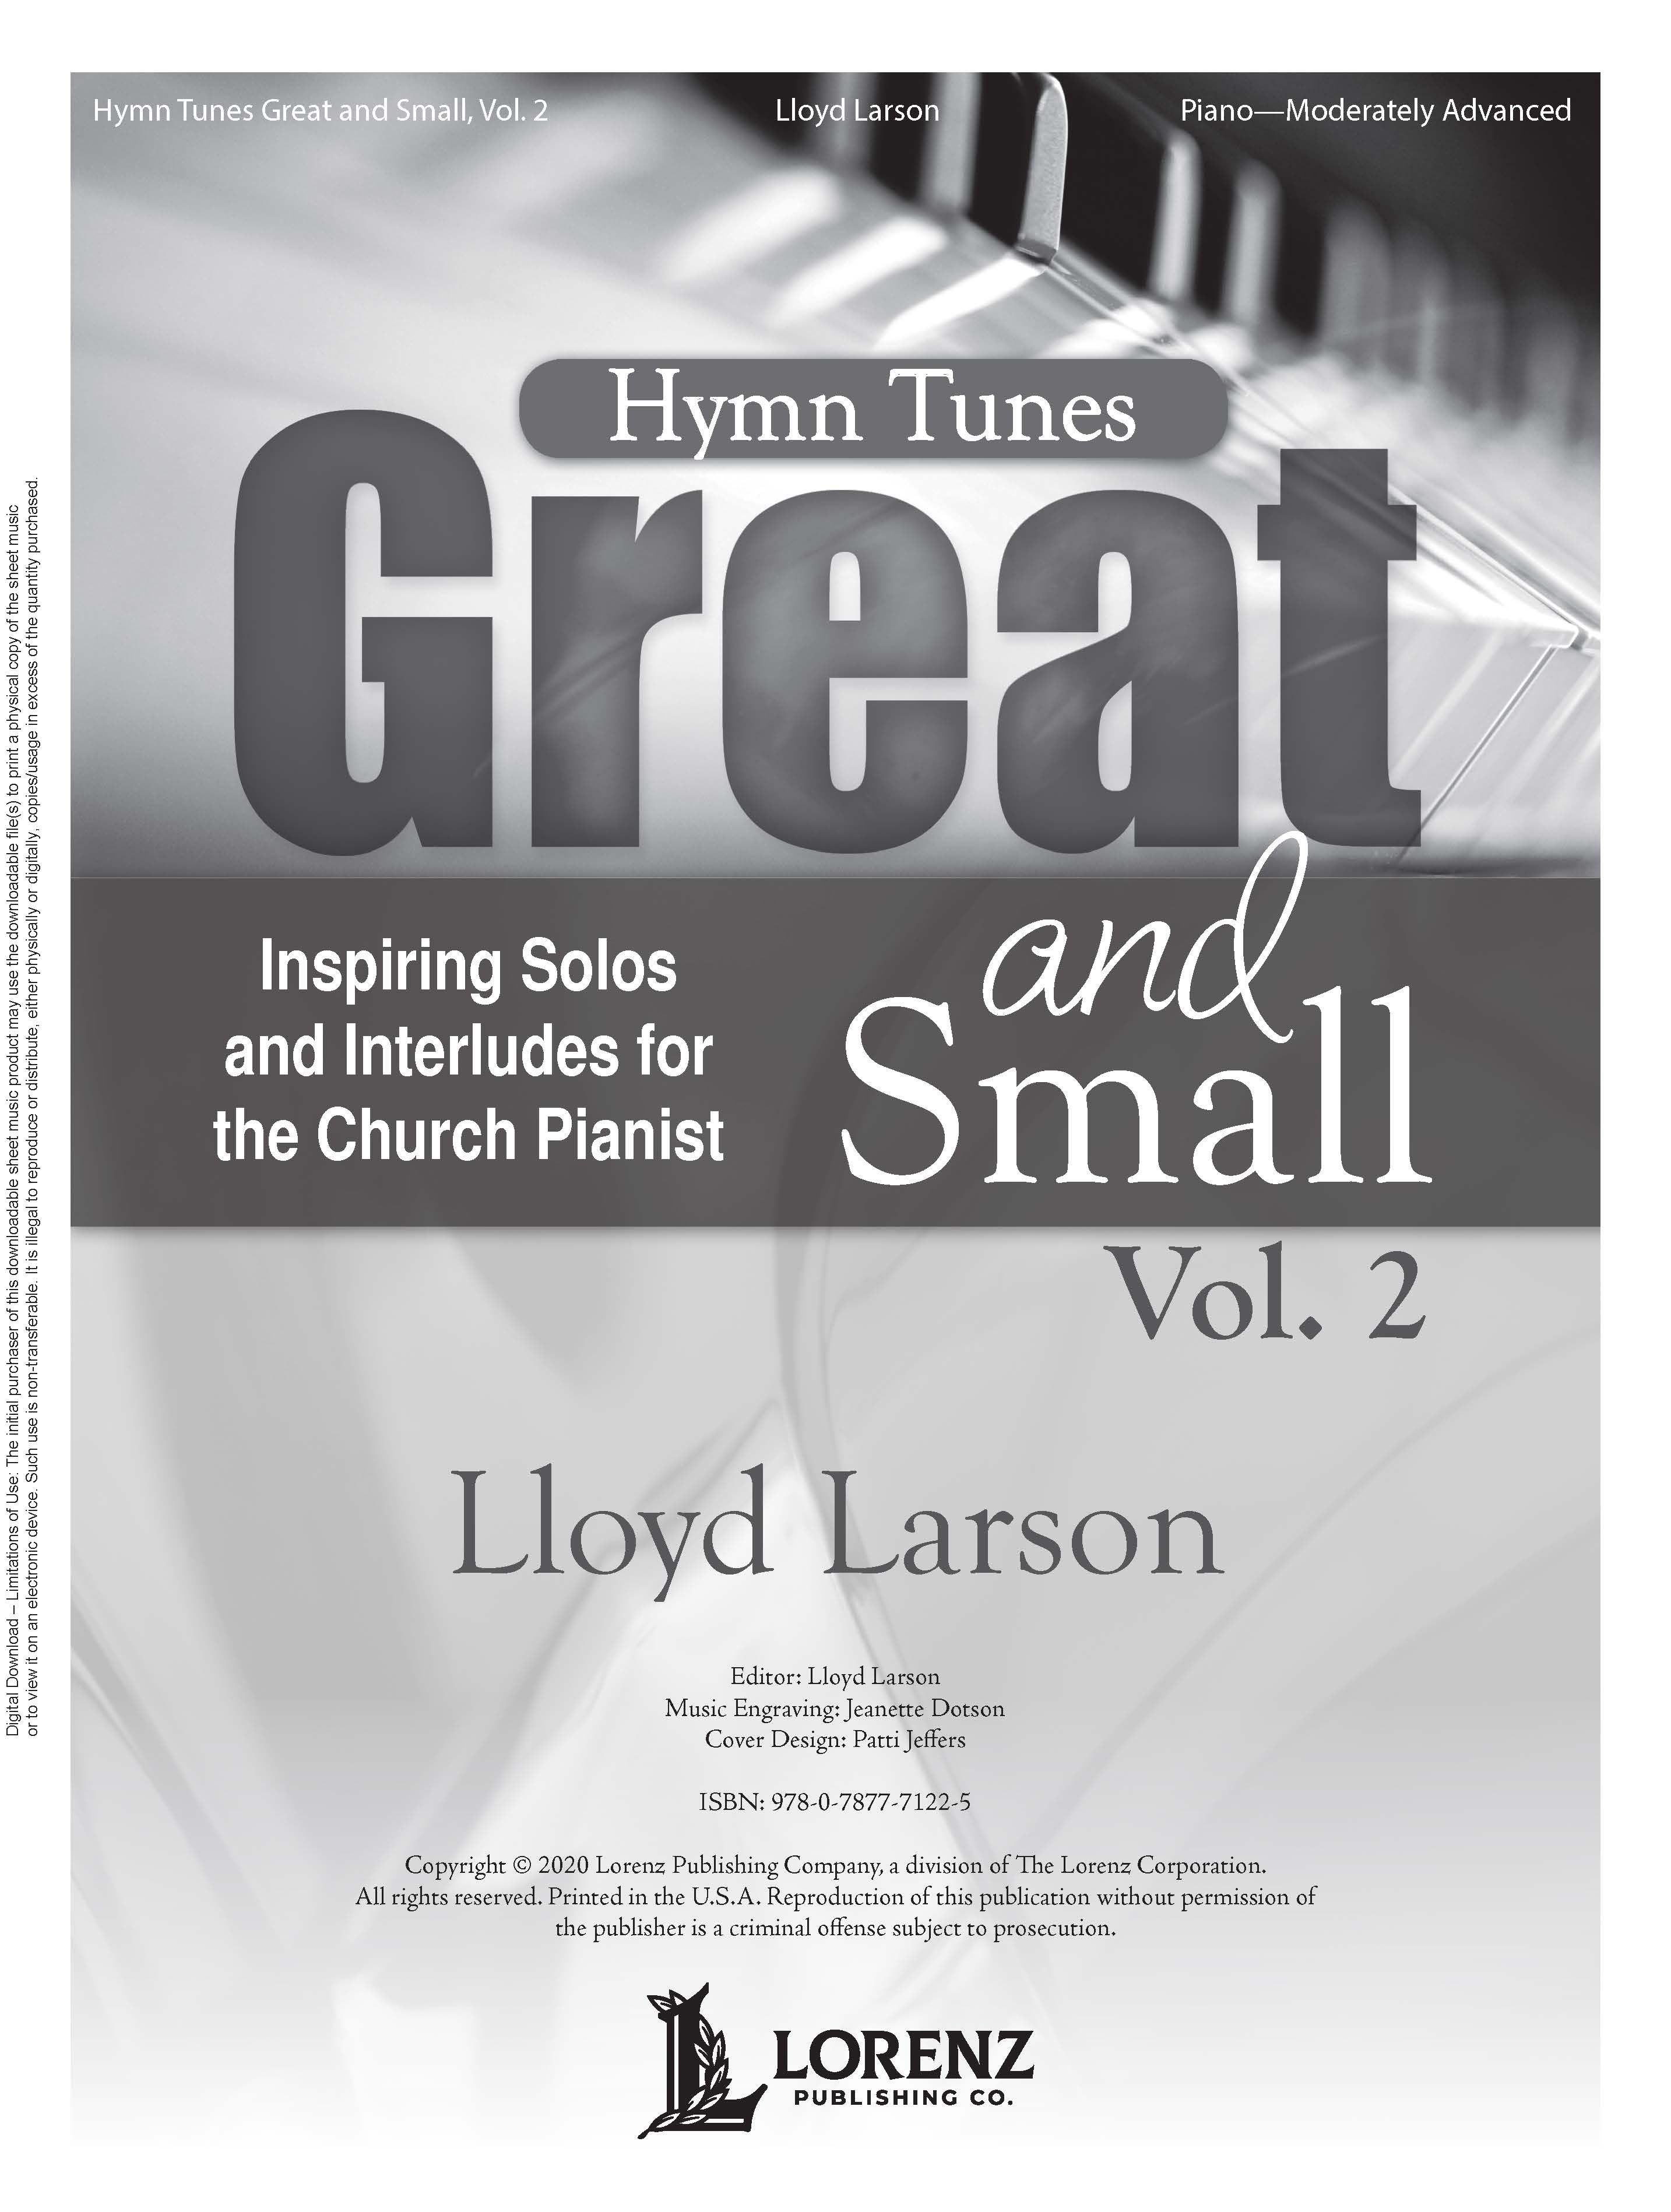 Hymn Tunes Great and Small, Vol. 2 - Digital Download